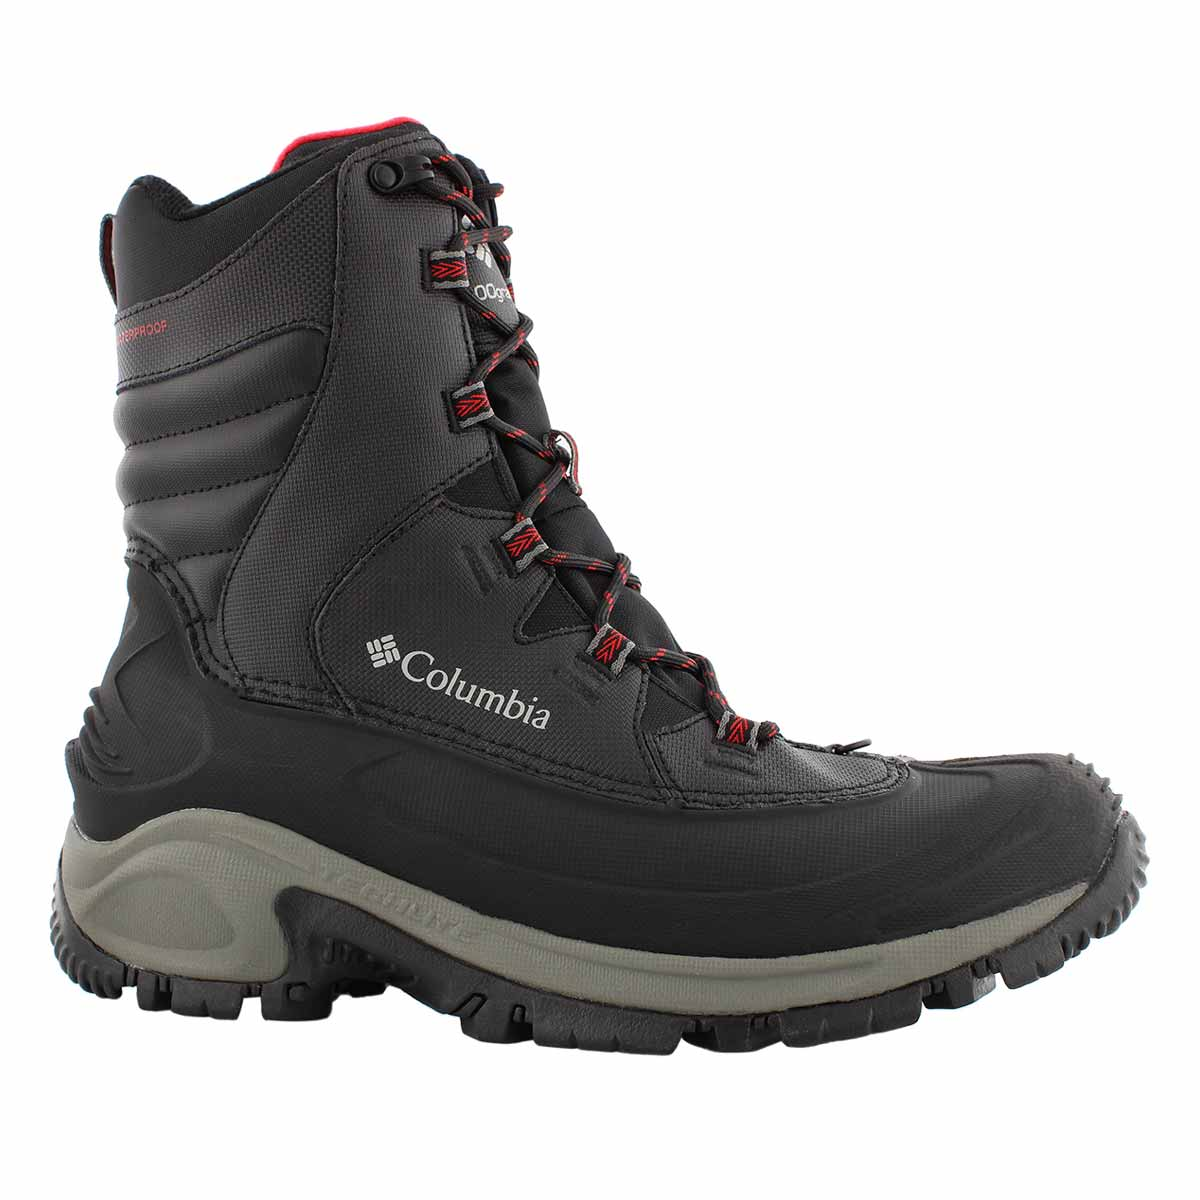 Mns Bugaboot III blk wtpf wntr boot-wide